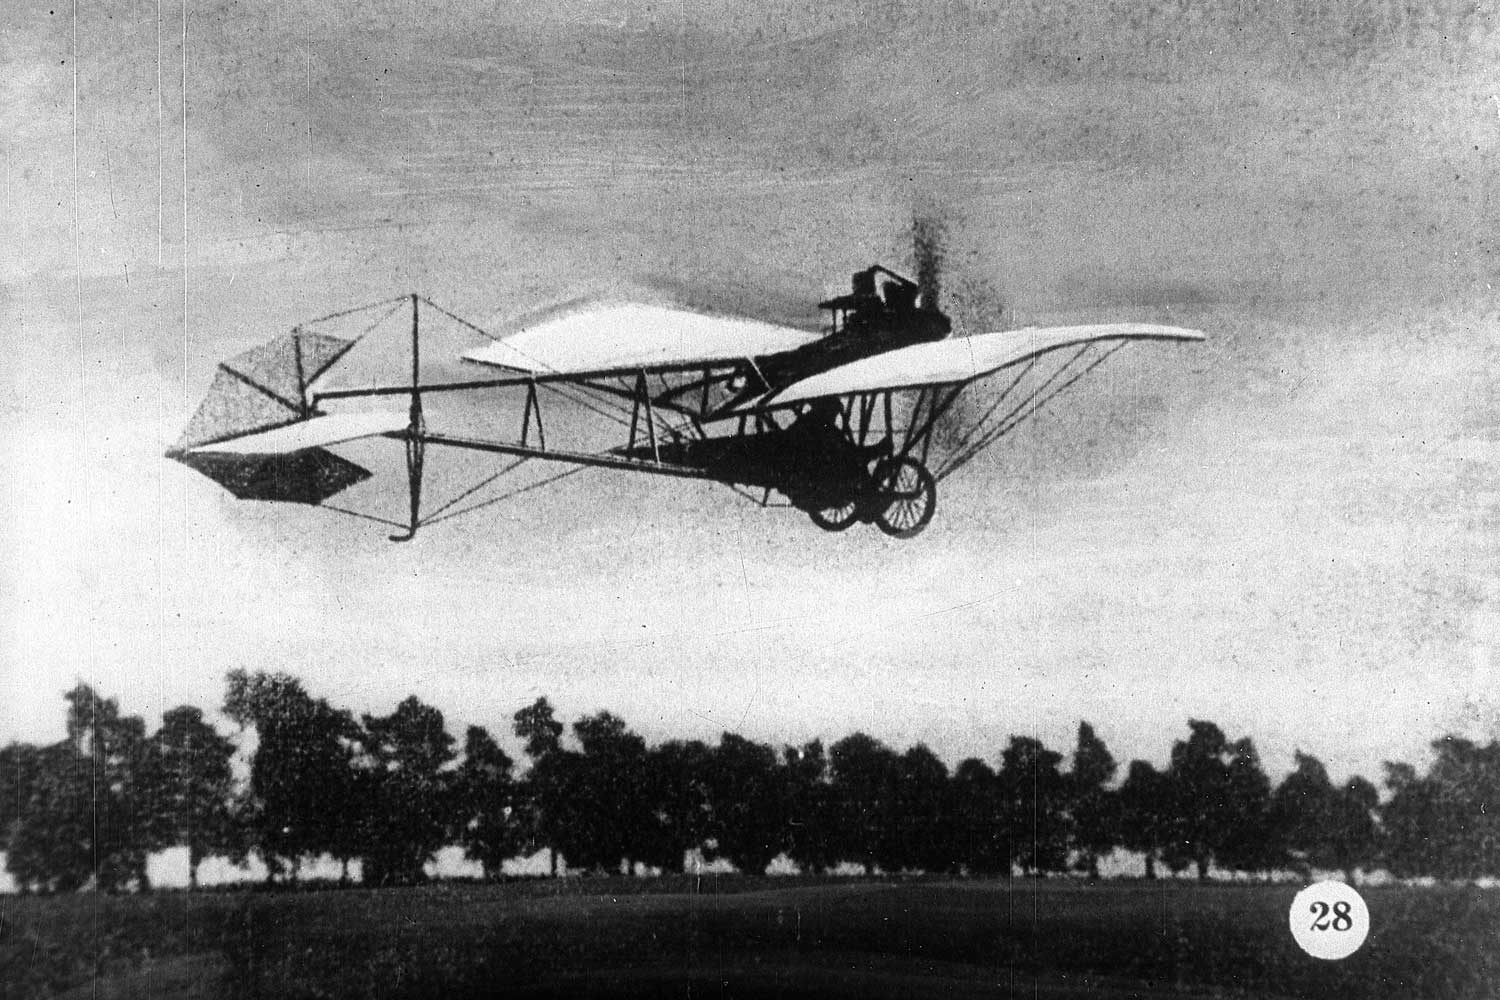 Alberto Santos-Dumont in his La Demoiselle plane.